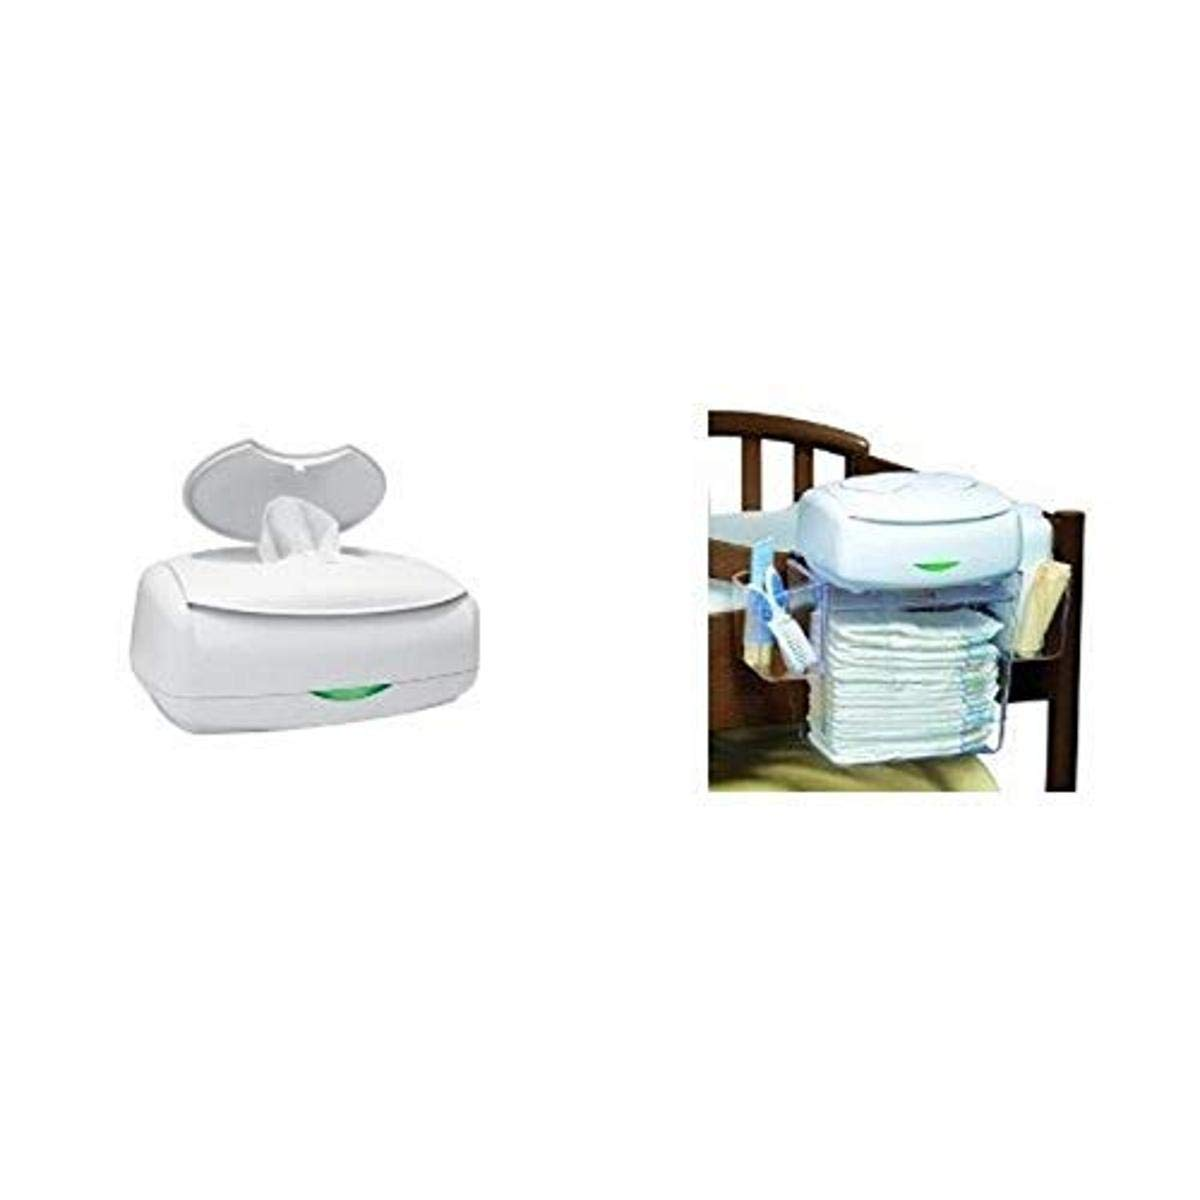 Prince Lionheart Ultimate Wipes Warmer with Diaper Depot Organizer